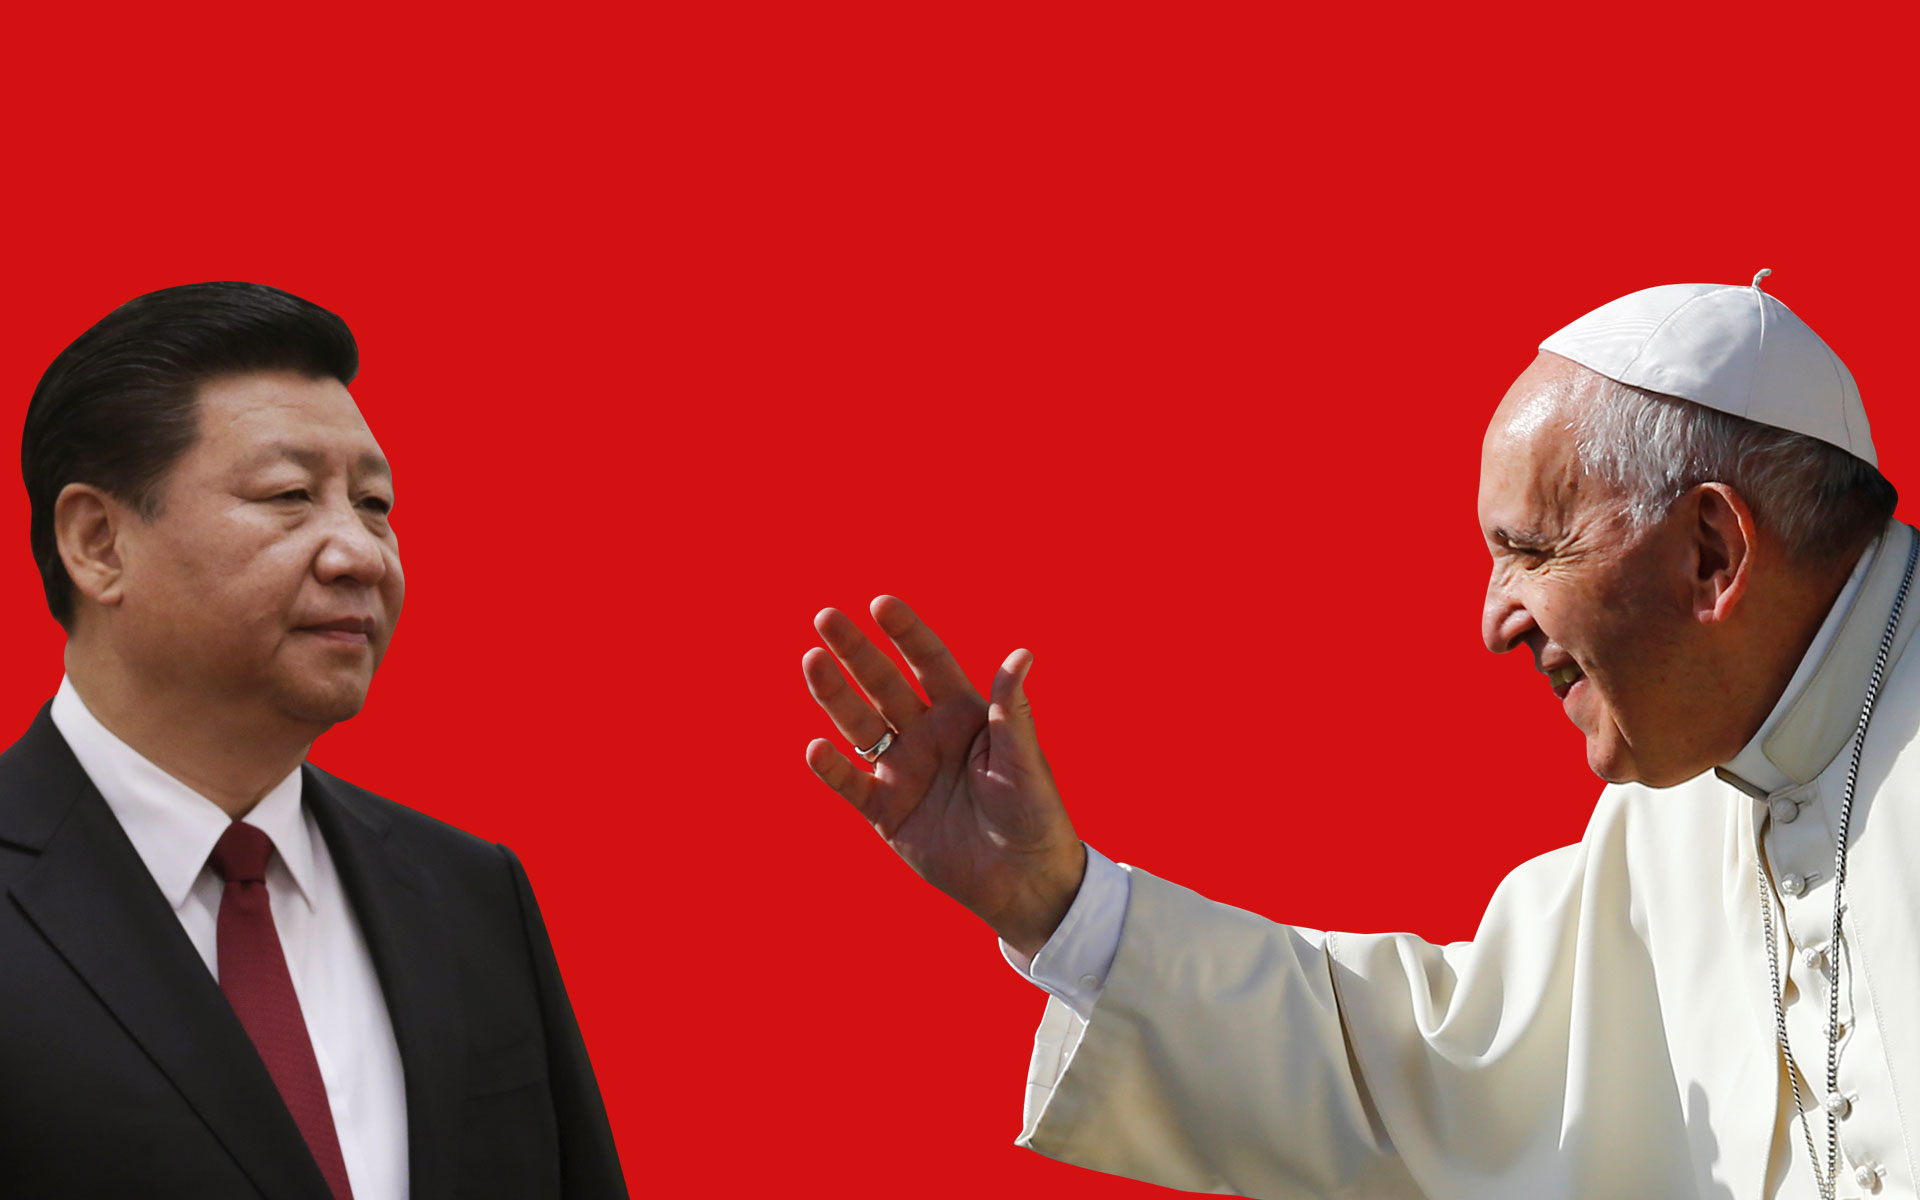 PAPAL OVERTURE: Pope Francis, seen here in a photomontage with Chinese President Xi Jinping, has been sending overtures to Beijing since he became pope in March 2013, signaling he wants to transform the frigid relations between the Vatican and China. (Photo courtesy: REUTERS/Jason Lee/Stefano Rellandini)